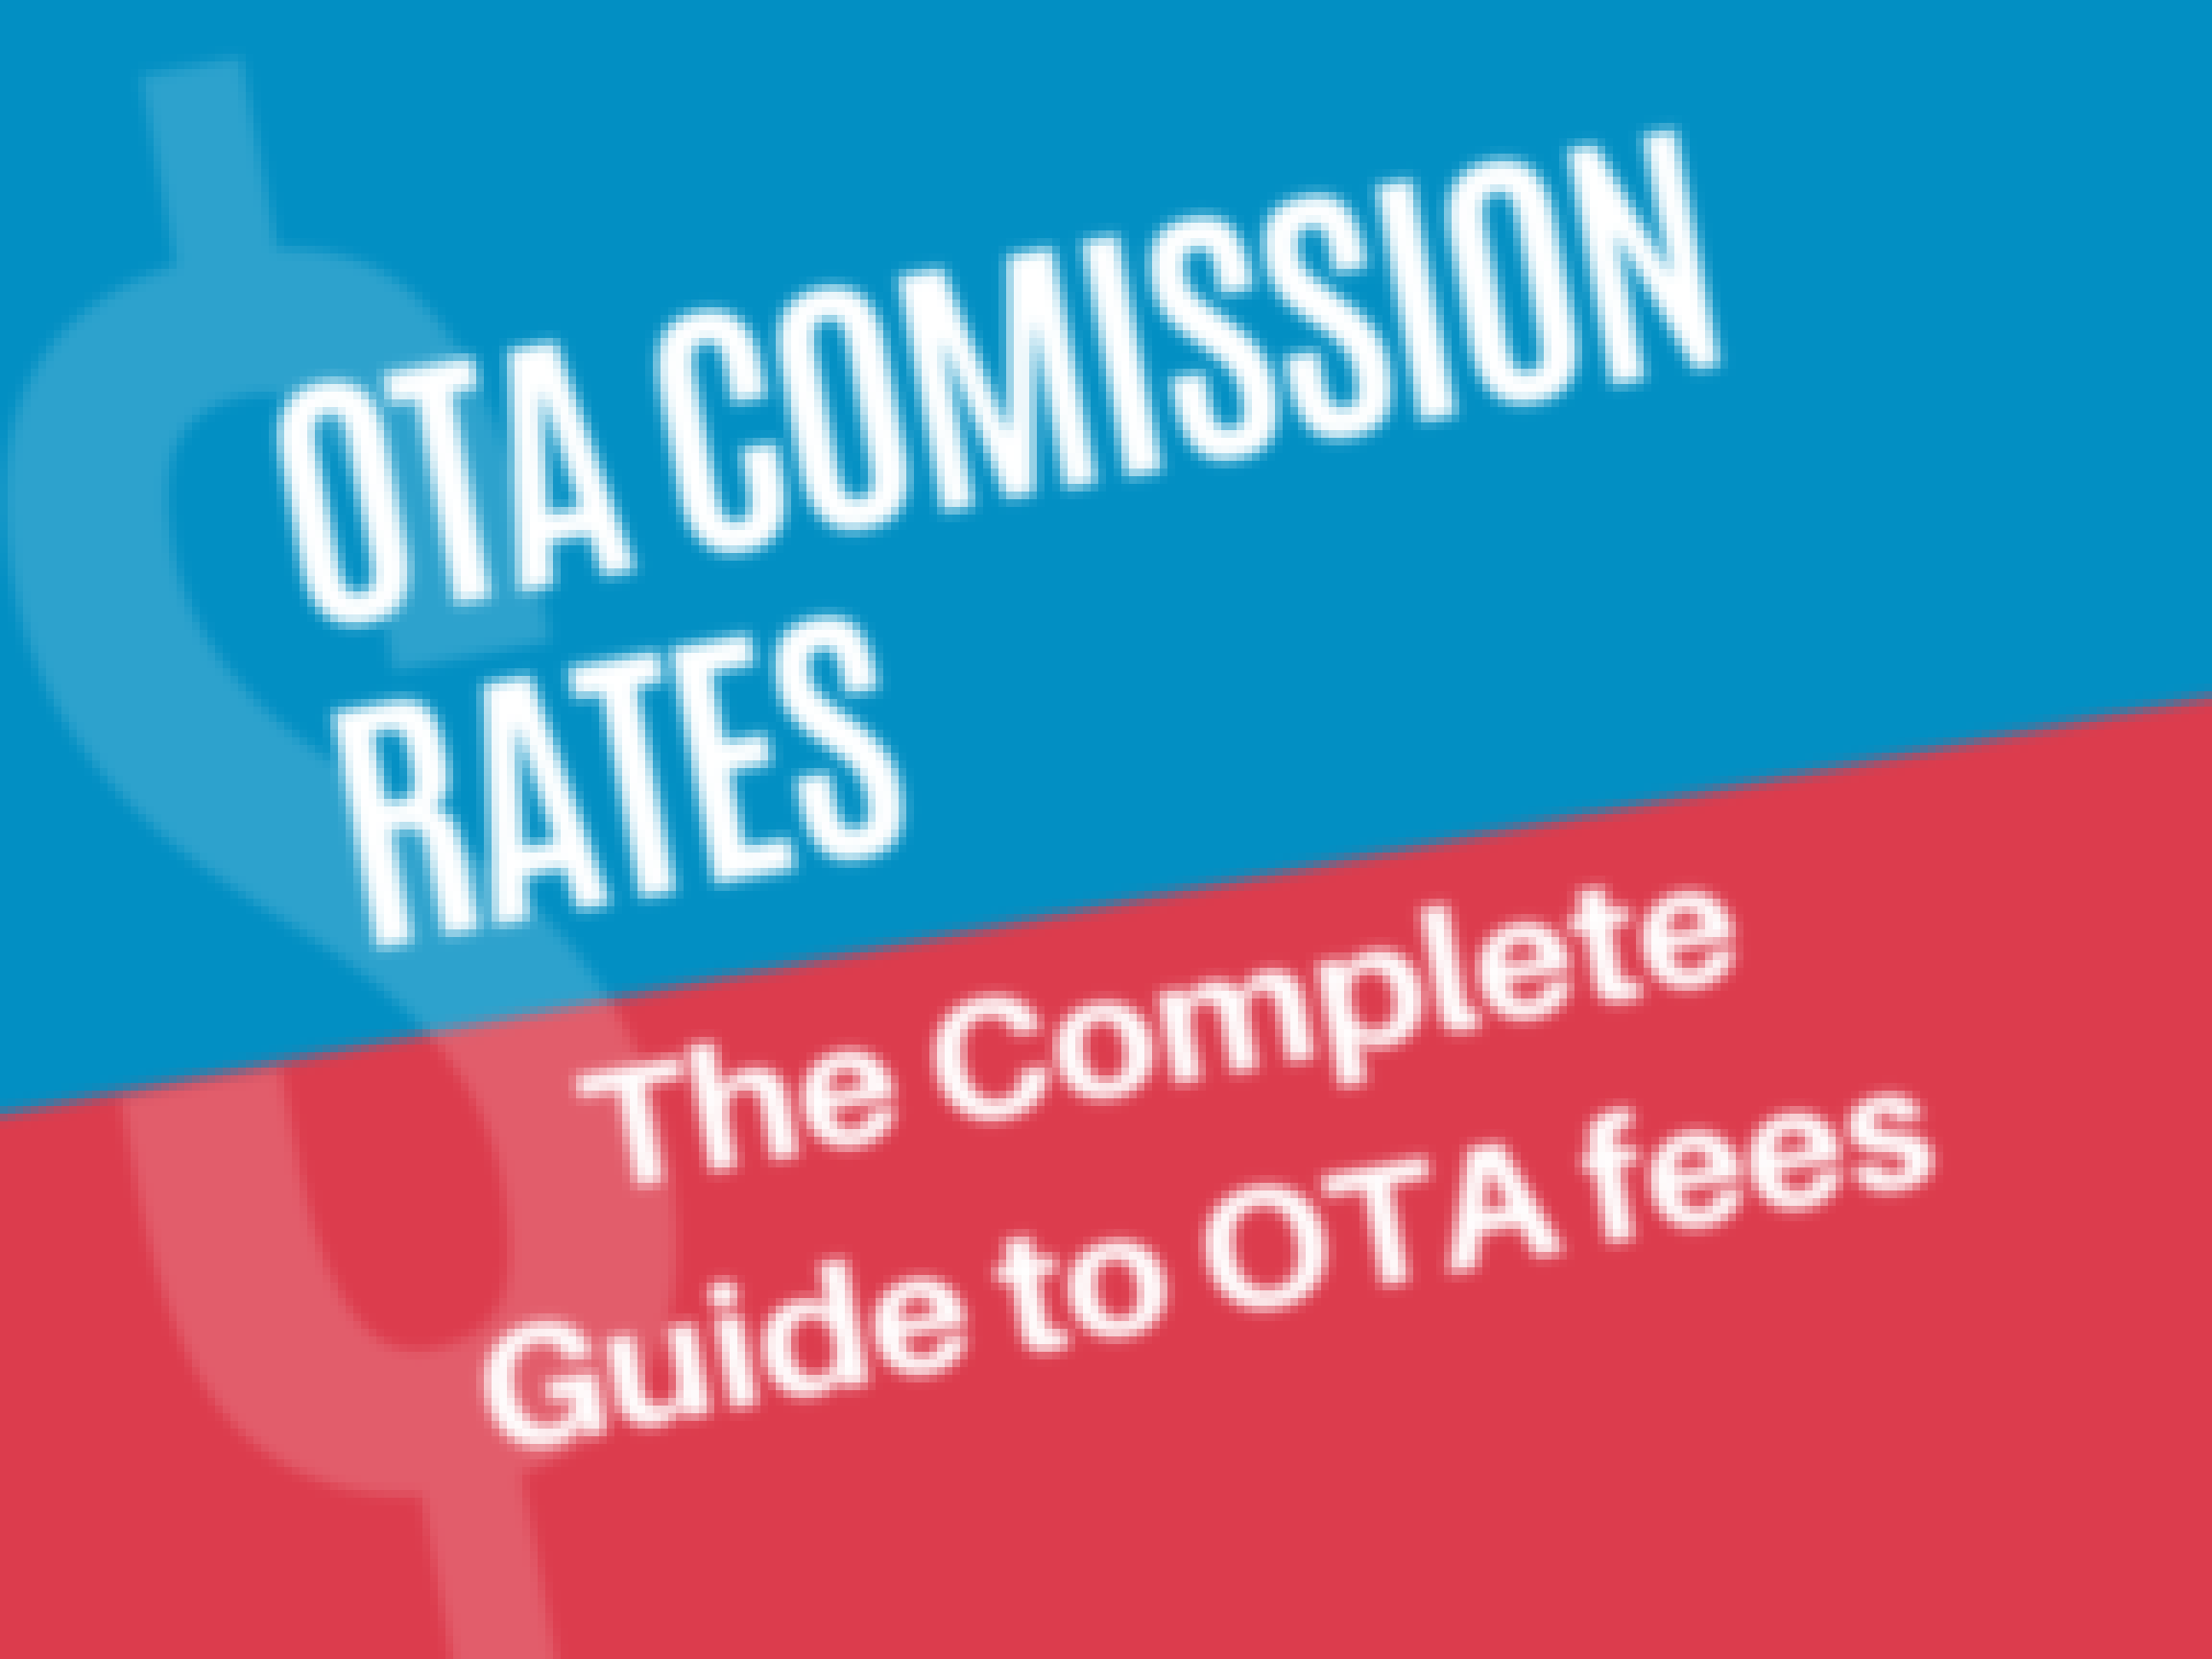 The complete guide to OTA commission fees banner